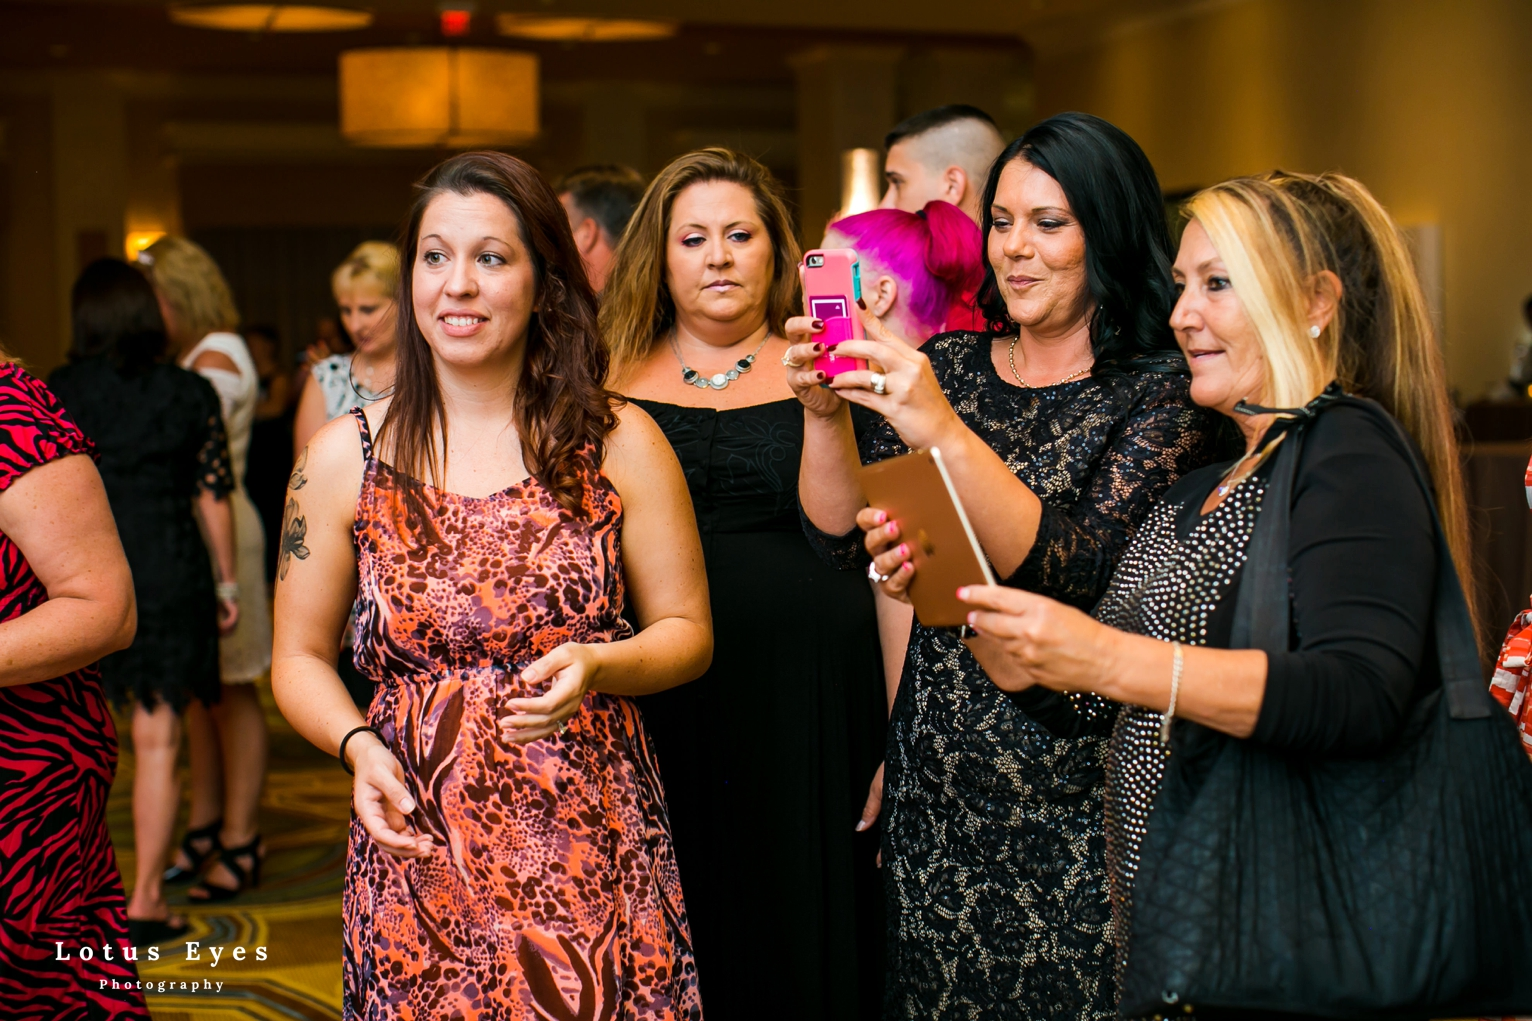 Orlando Event Photographers